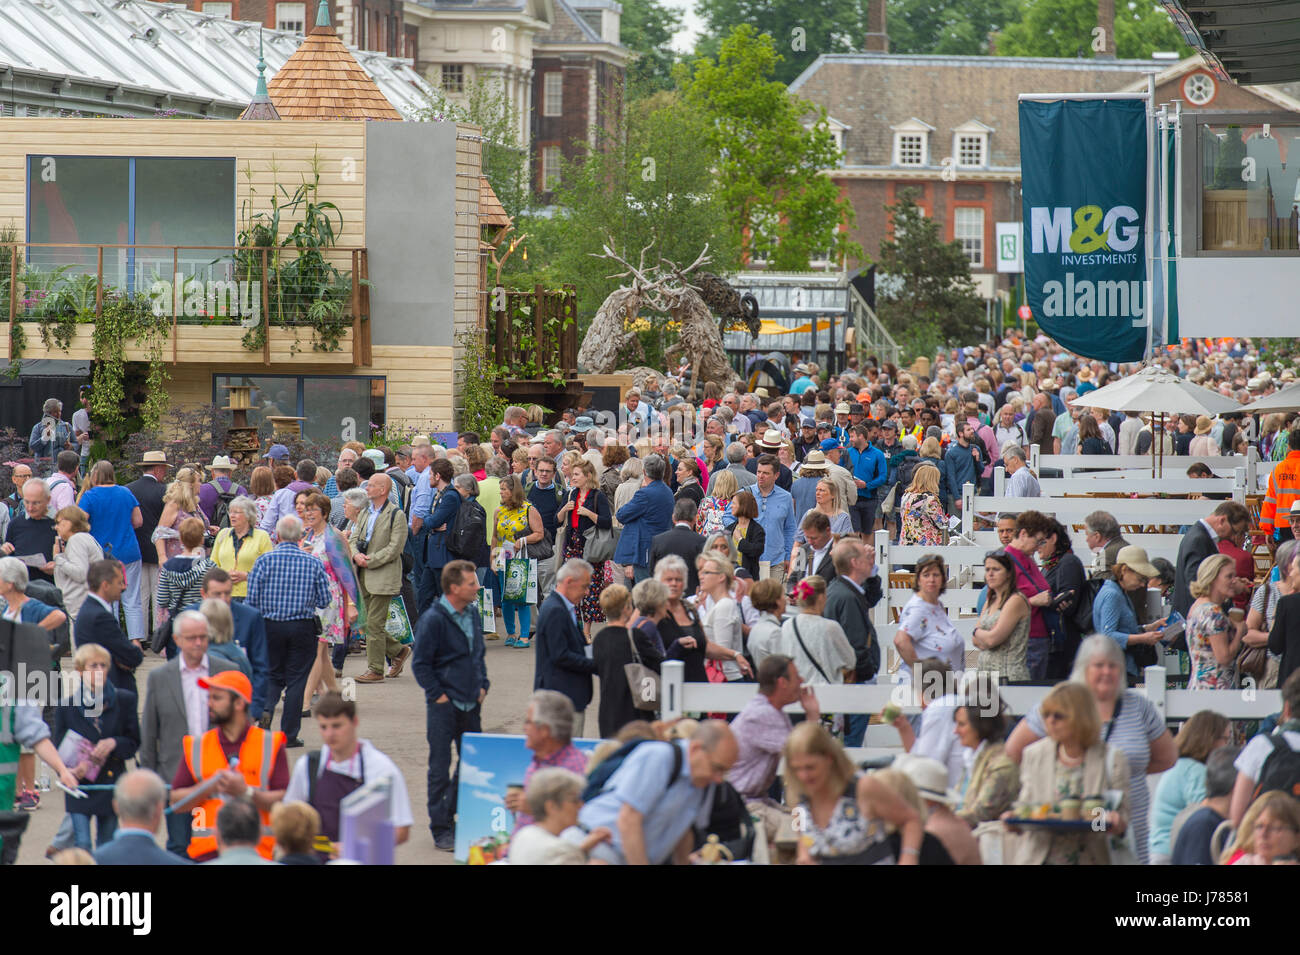 Opening public day of the world famous 2017 RHS Chelsea Flower Show with large crowds attending. - Stock Image